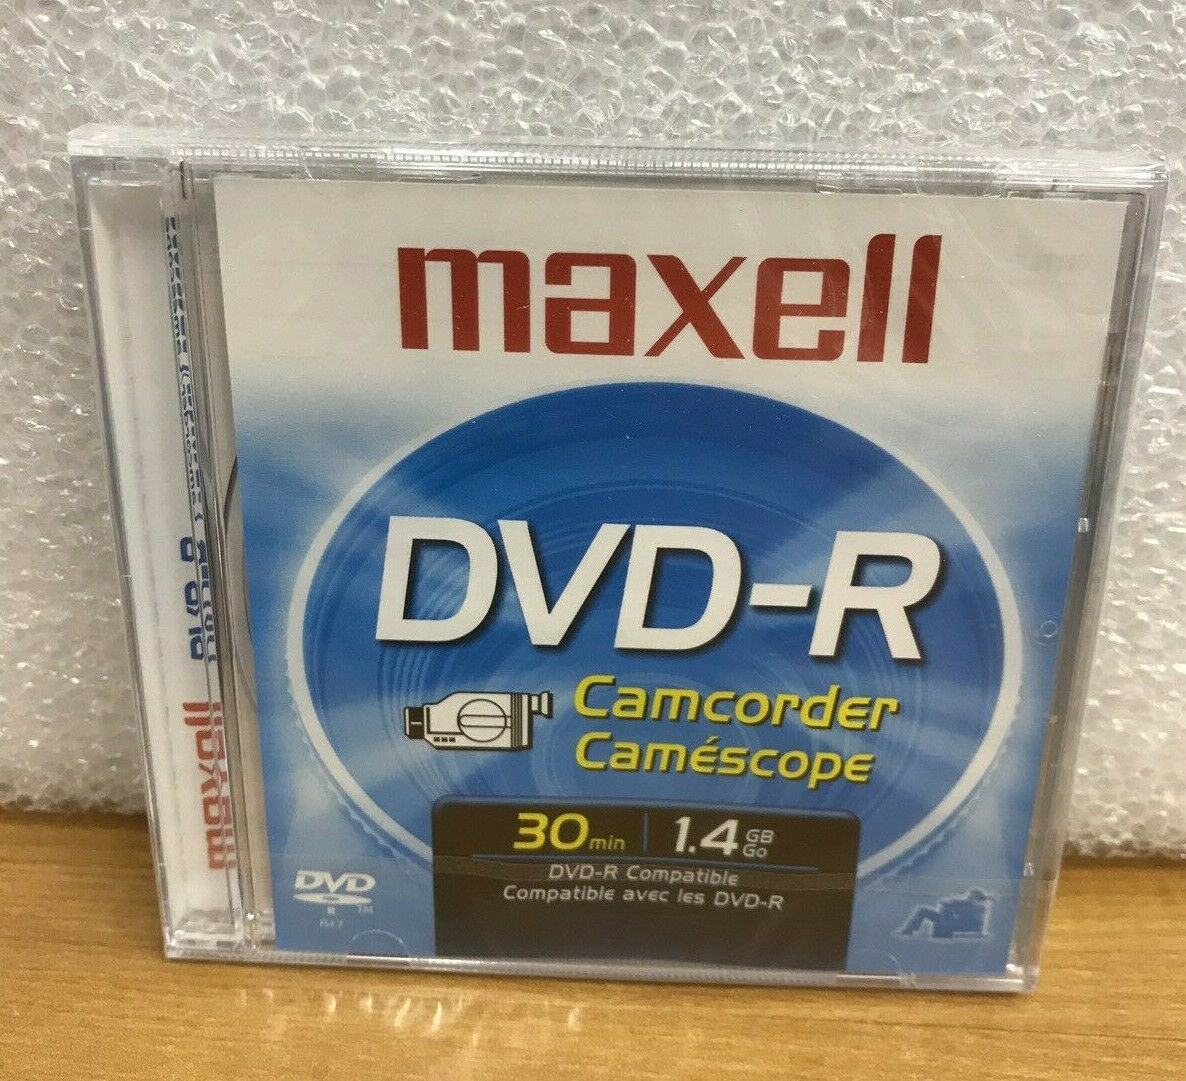 Maxell DVD-R Camcorder 30 minute 1.4 GB Mini DVD Discs Lot of 3 -NEW Sealed